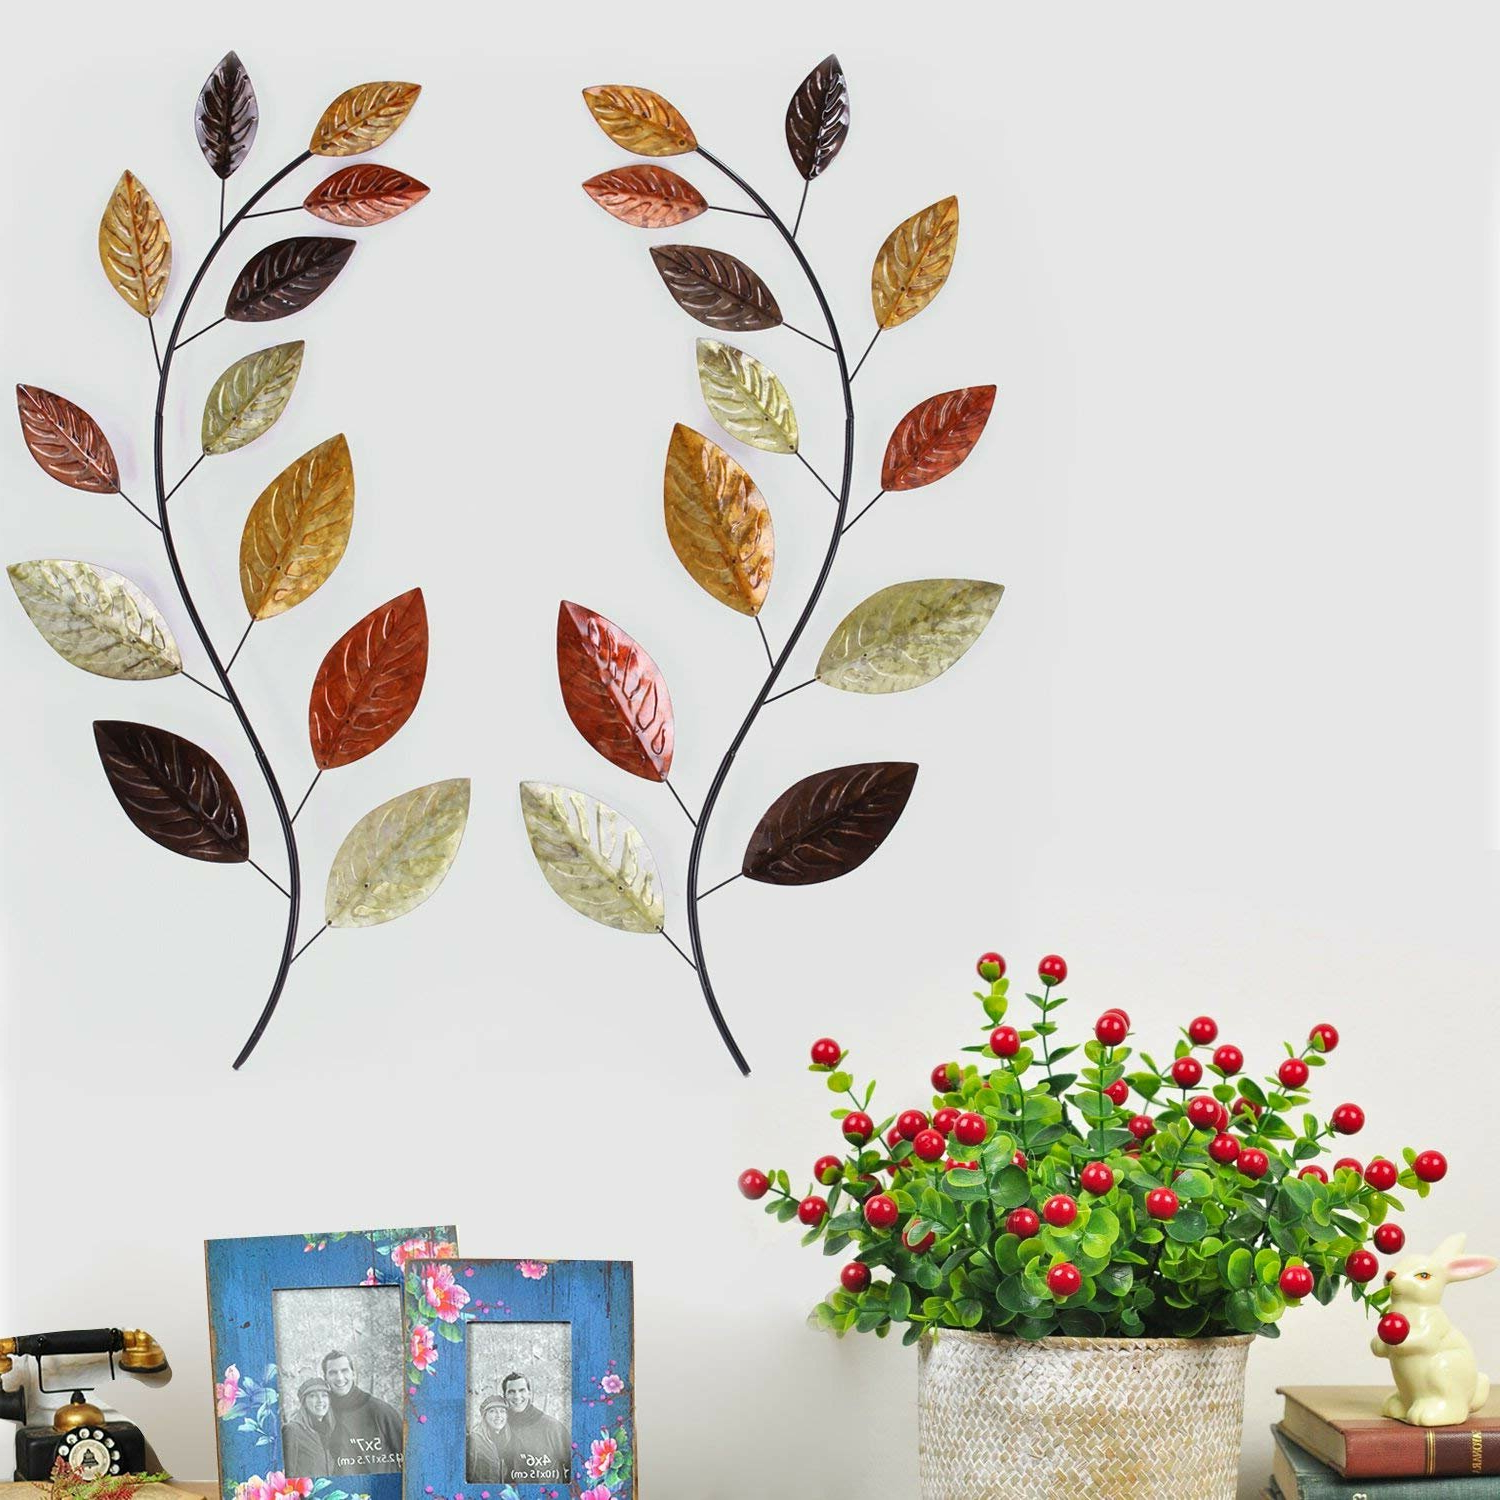 Newest Branches And Leaves 3 Wall Decor Regarding Abstract Tree Wall Décor By Winston Porter (View 6 of 20)